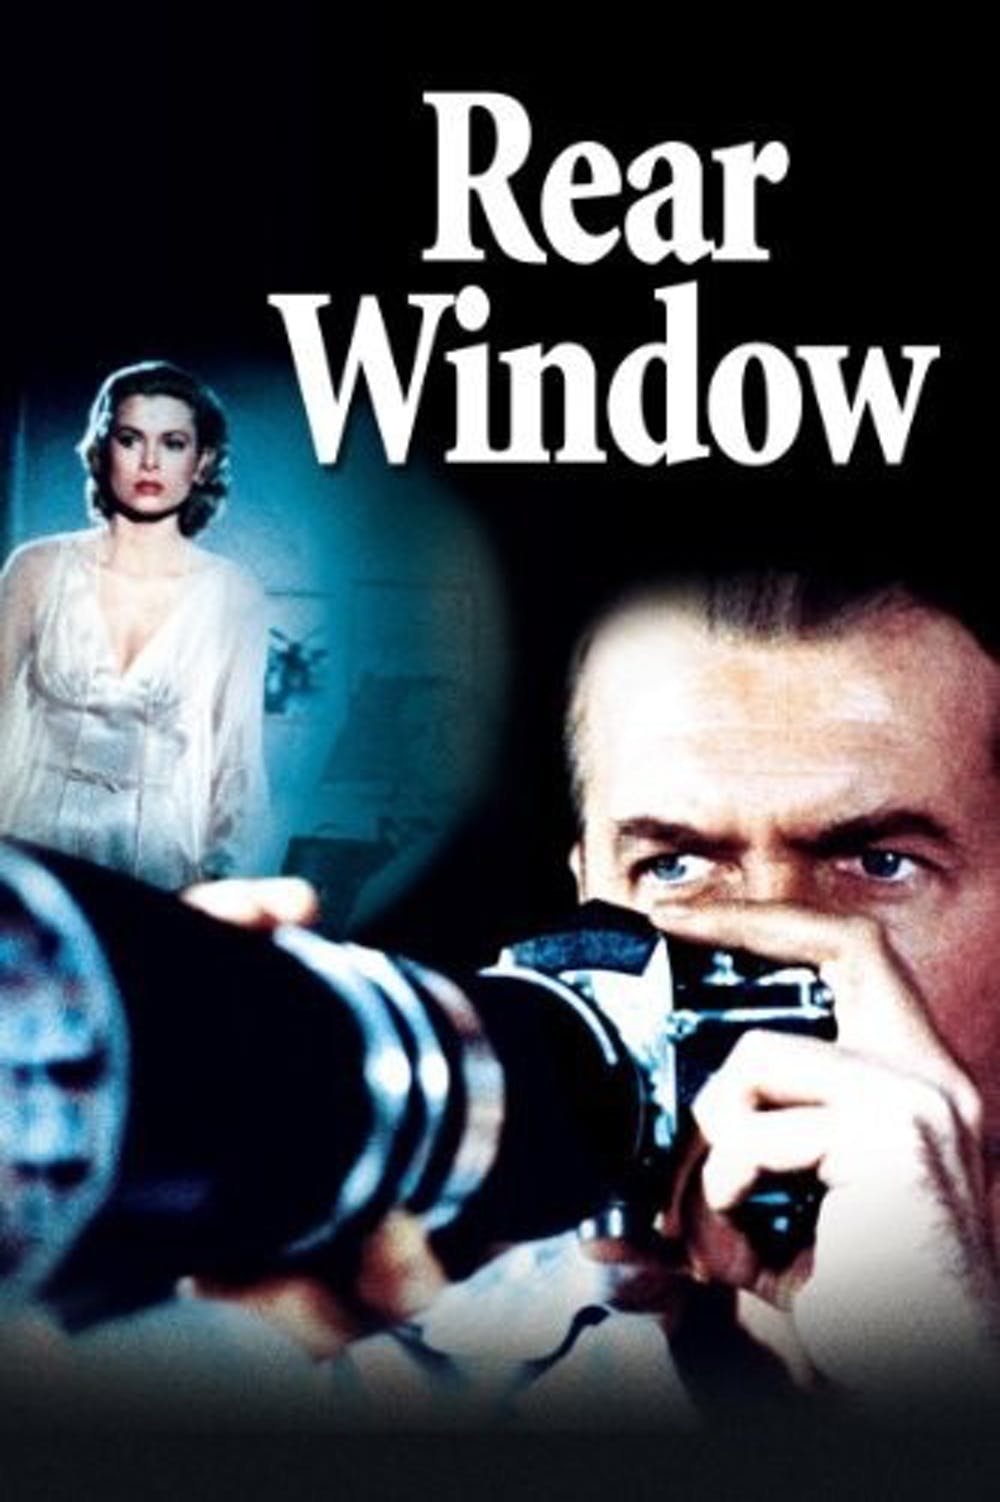 Grindhouse Review: 'Rear Window'